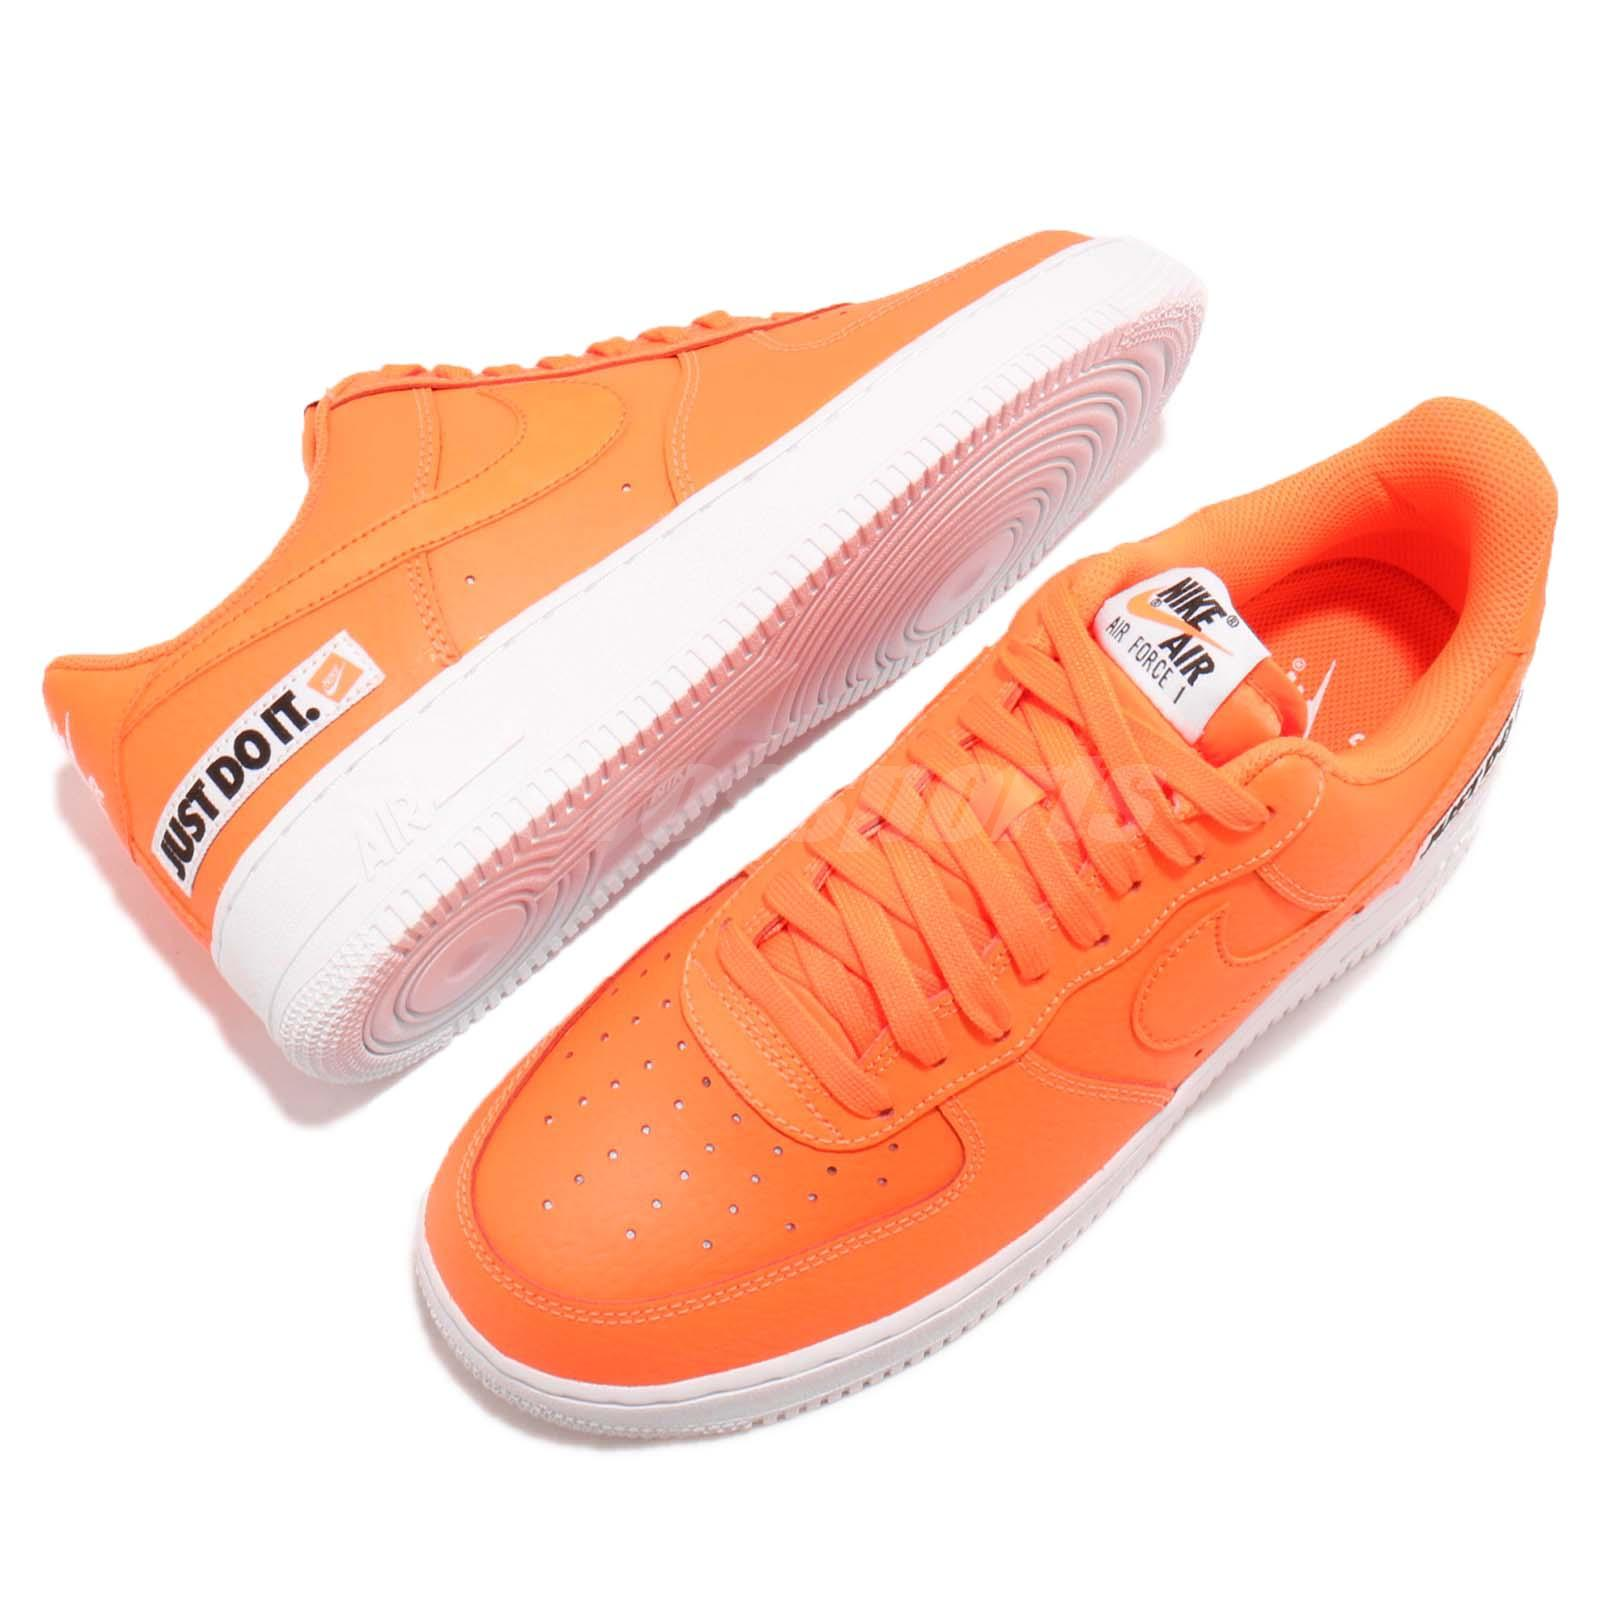 100% authentic 4fa55 f8dd0 Nike Air Force 1 07 LV8 JDI LTHR Just Do It Leather Orange Sneakers ...